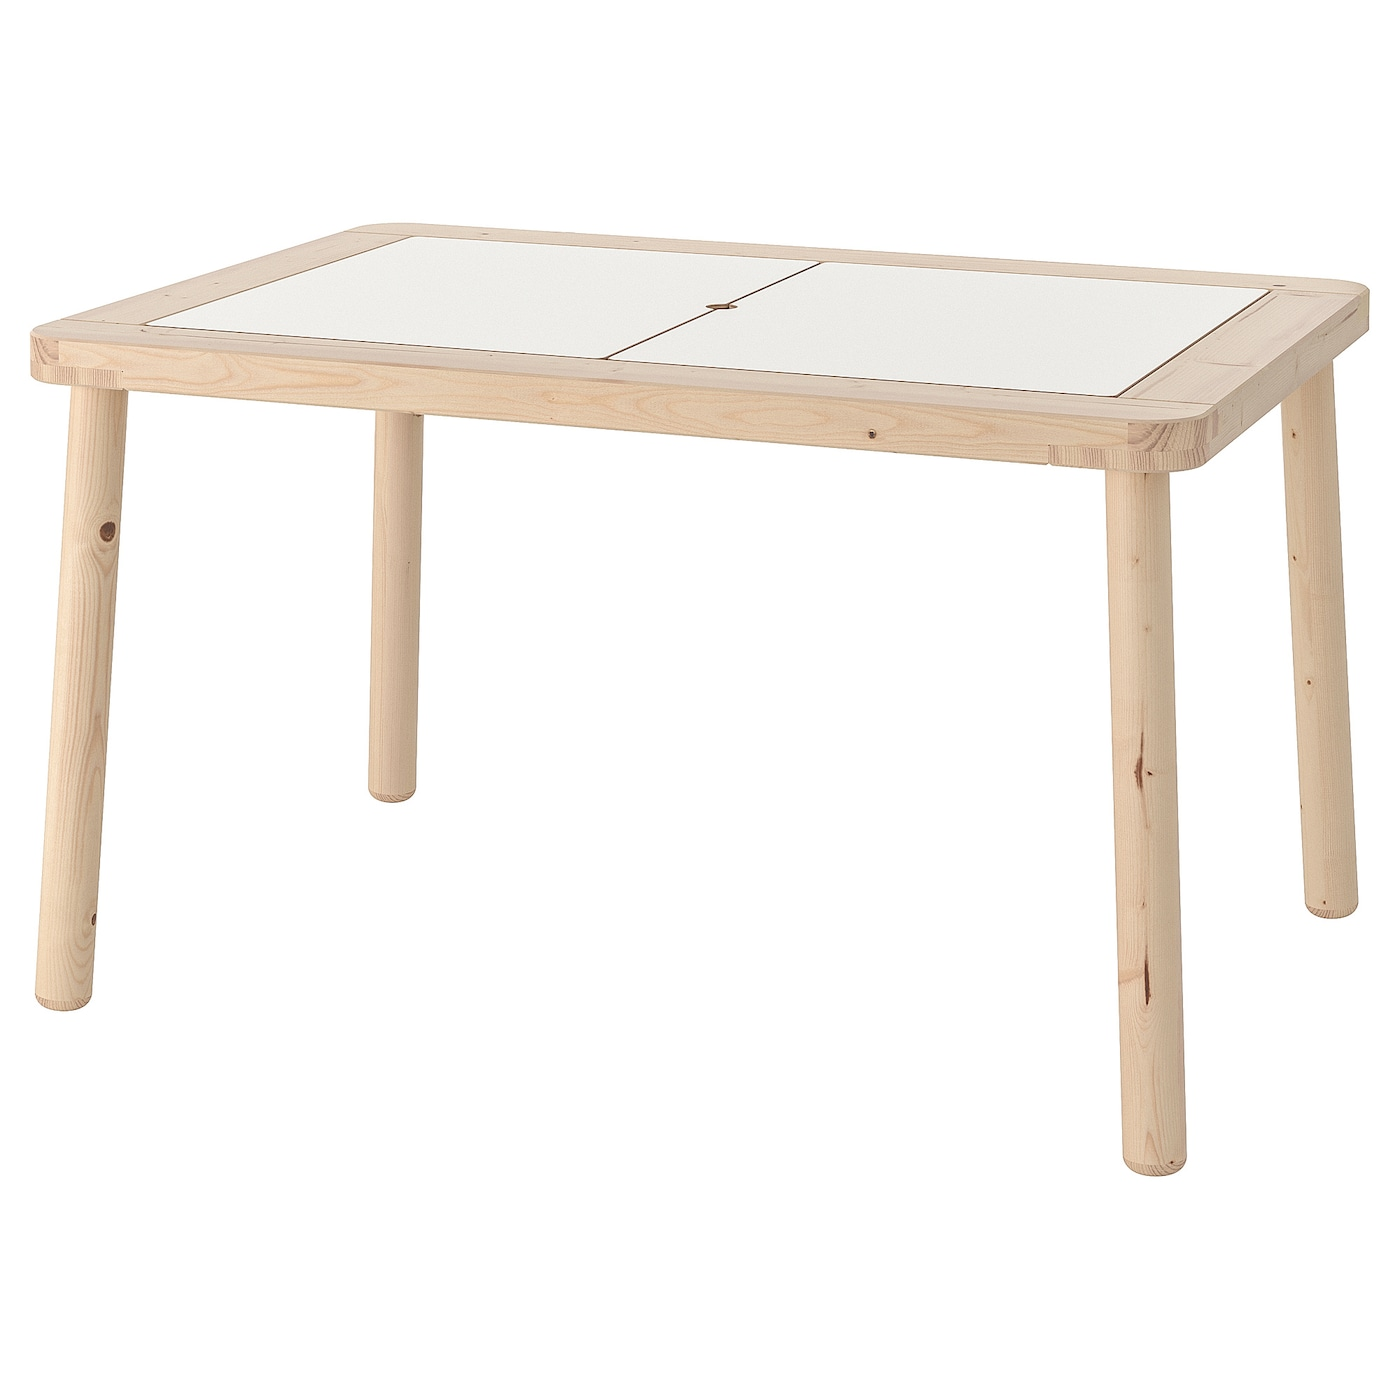 Picture of: Flisat Children S Table 83×58 Cm Ikea